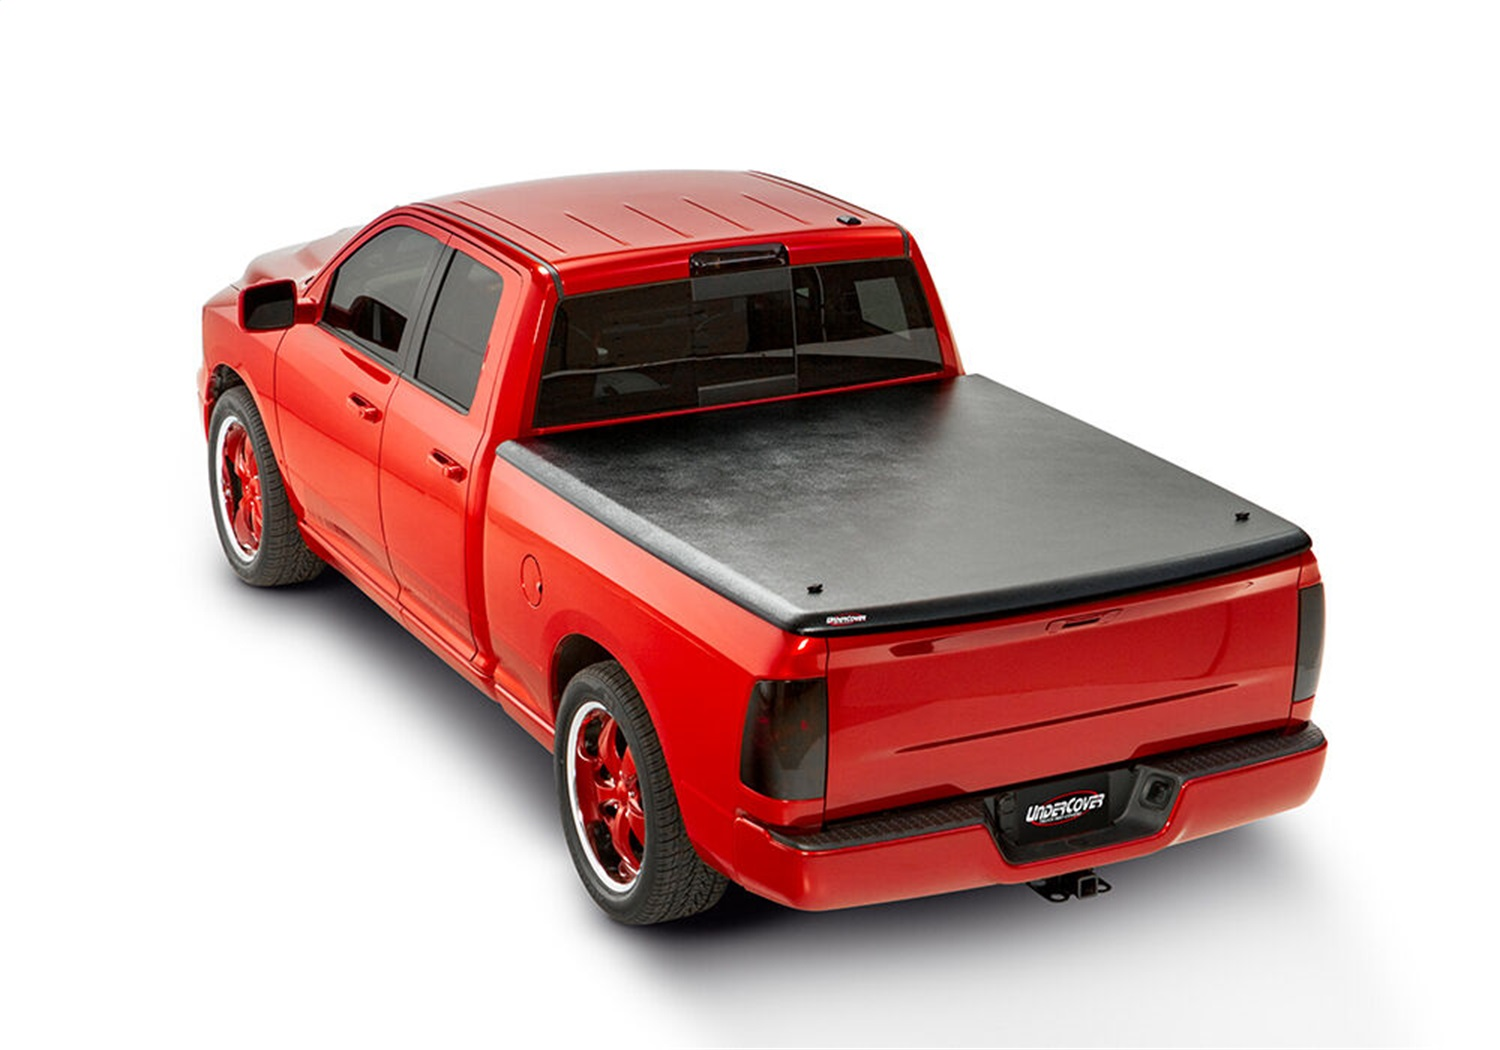 Classic Tonneau Cover, Black, Textured Finish, Non Paintable, Will Not Fit Ram Box